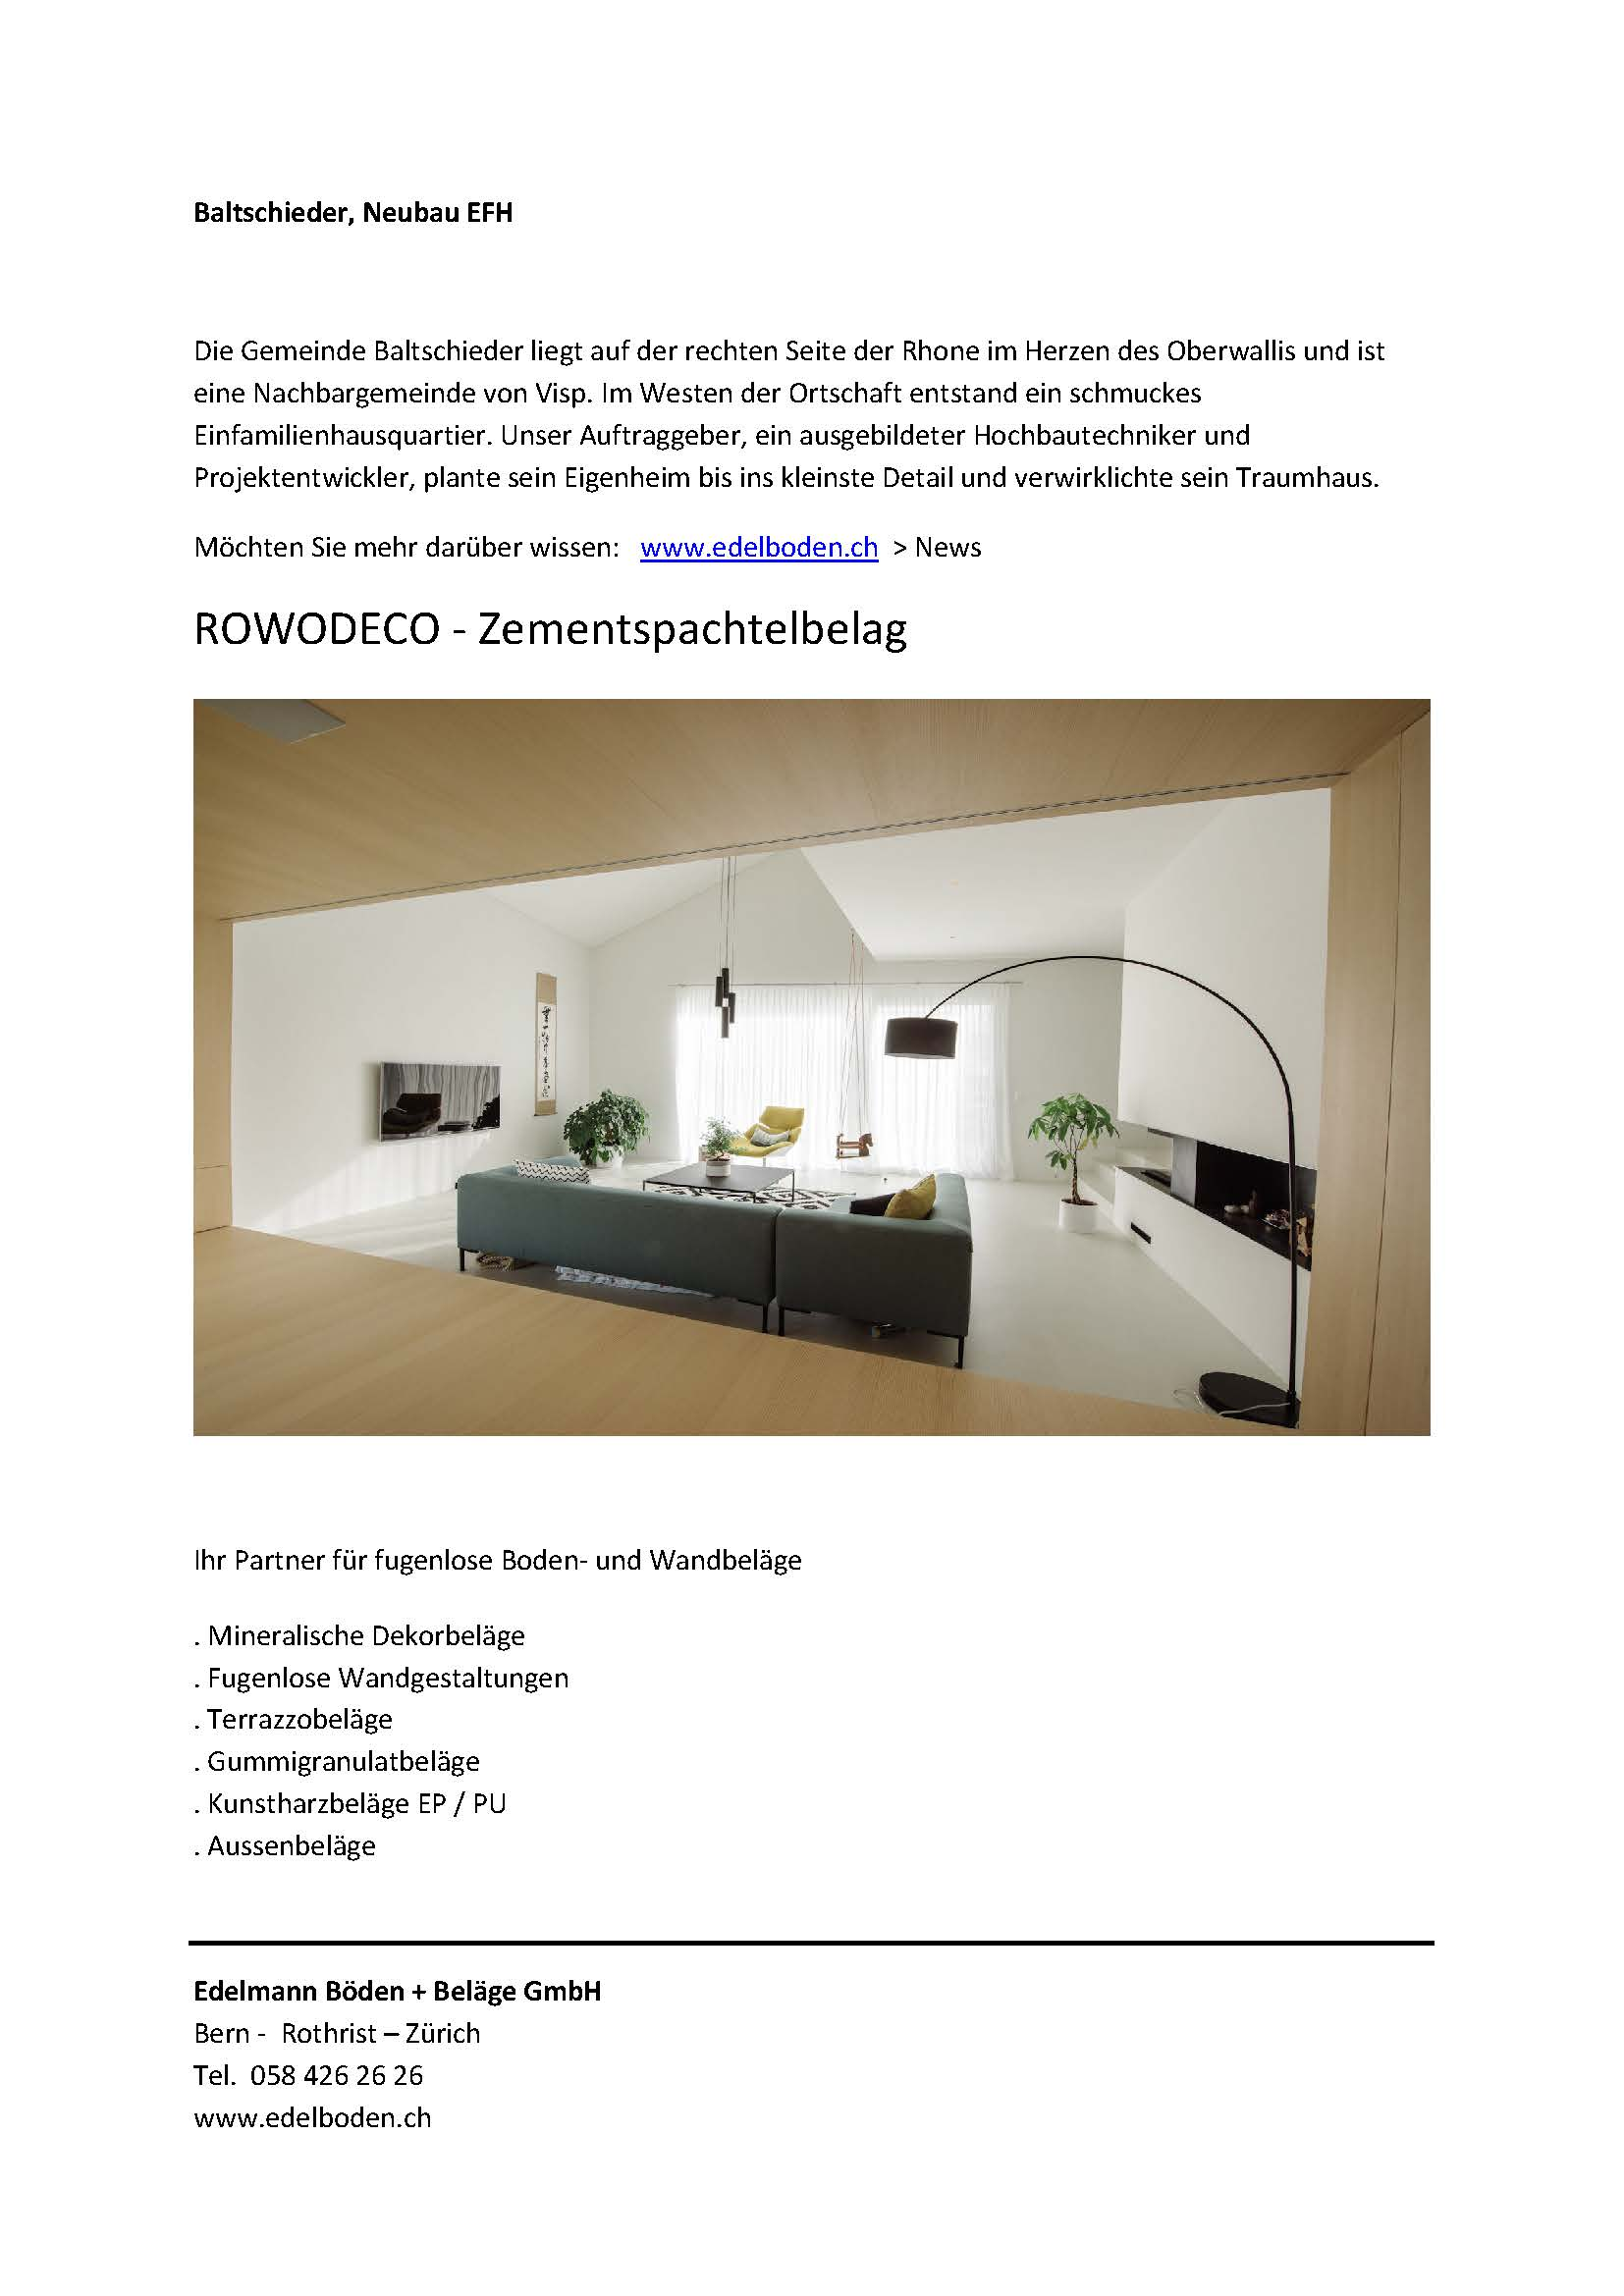 newsletter-35-baltschieder-efh.jpg